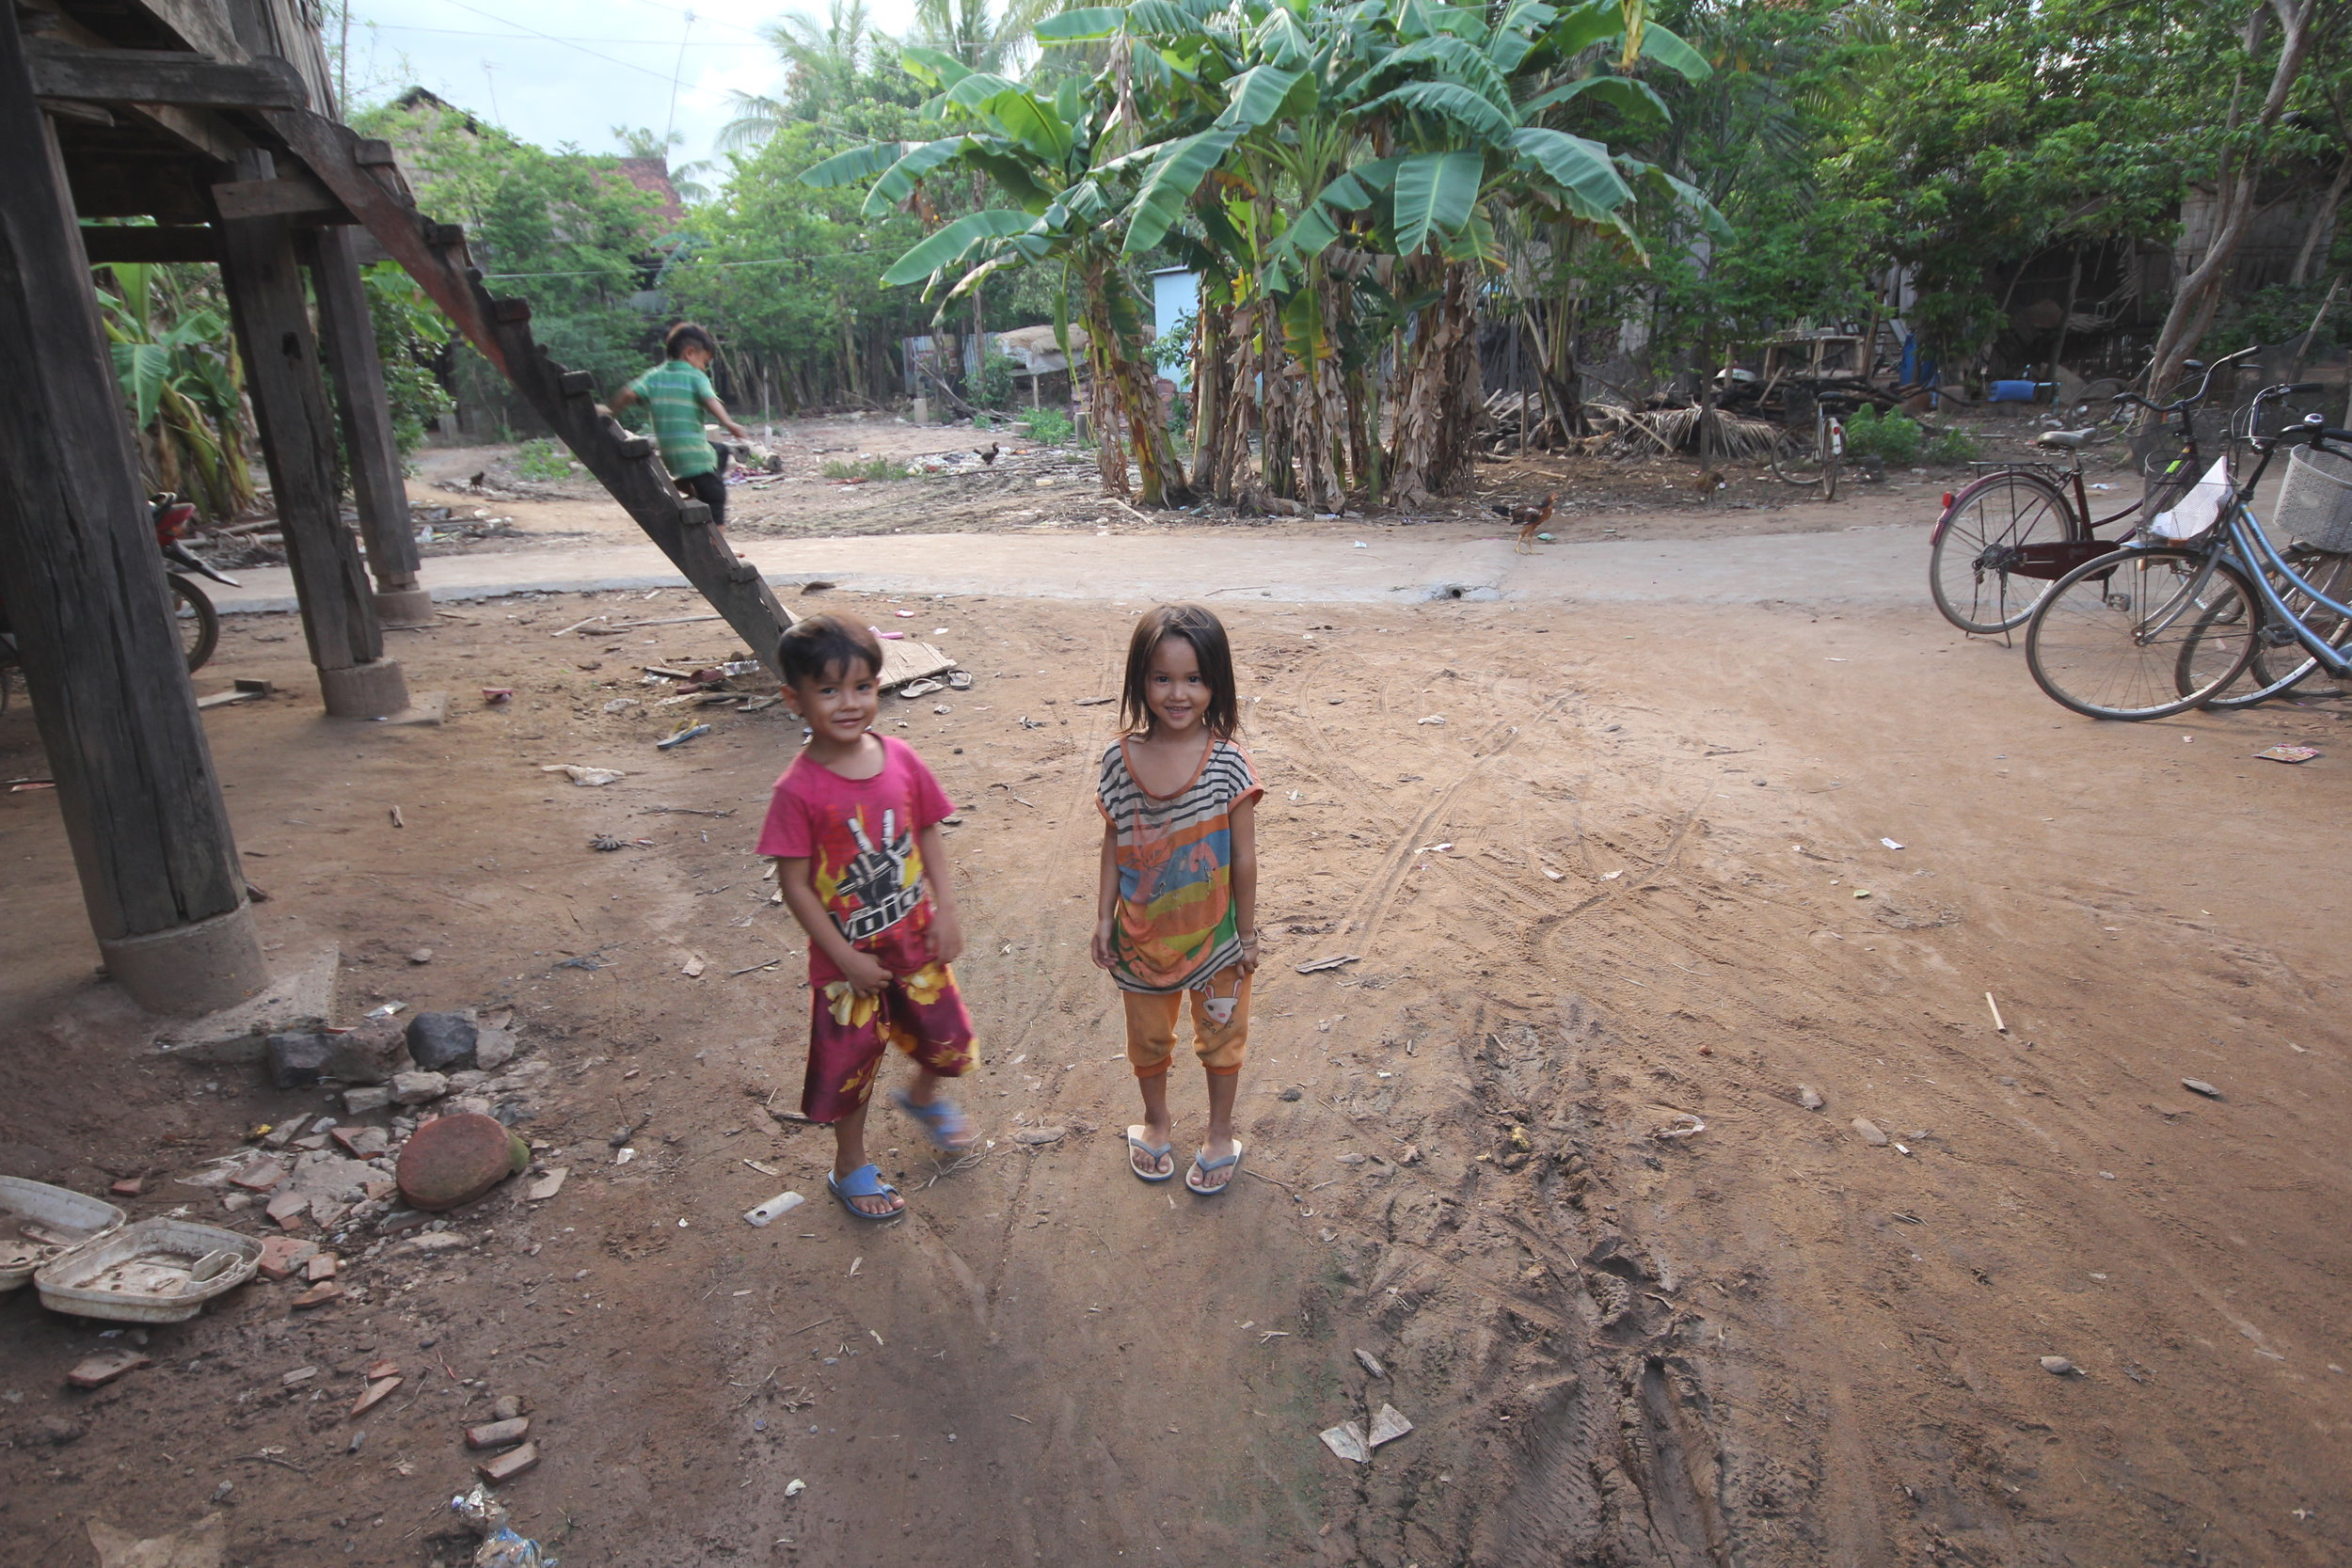 Children playing outside Spring of Hope School in Svay Khleang